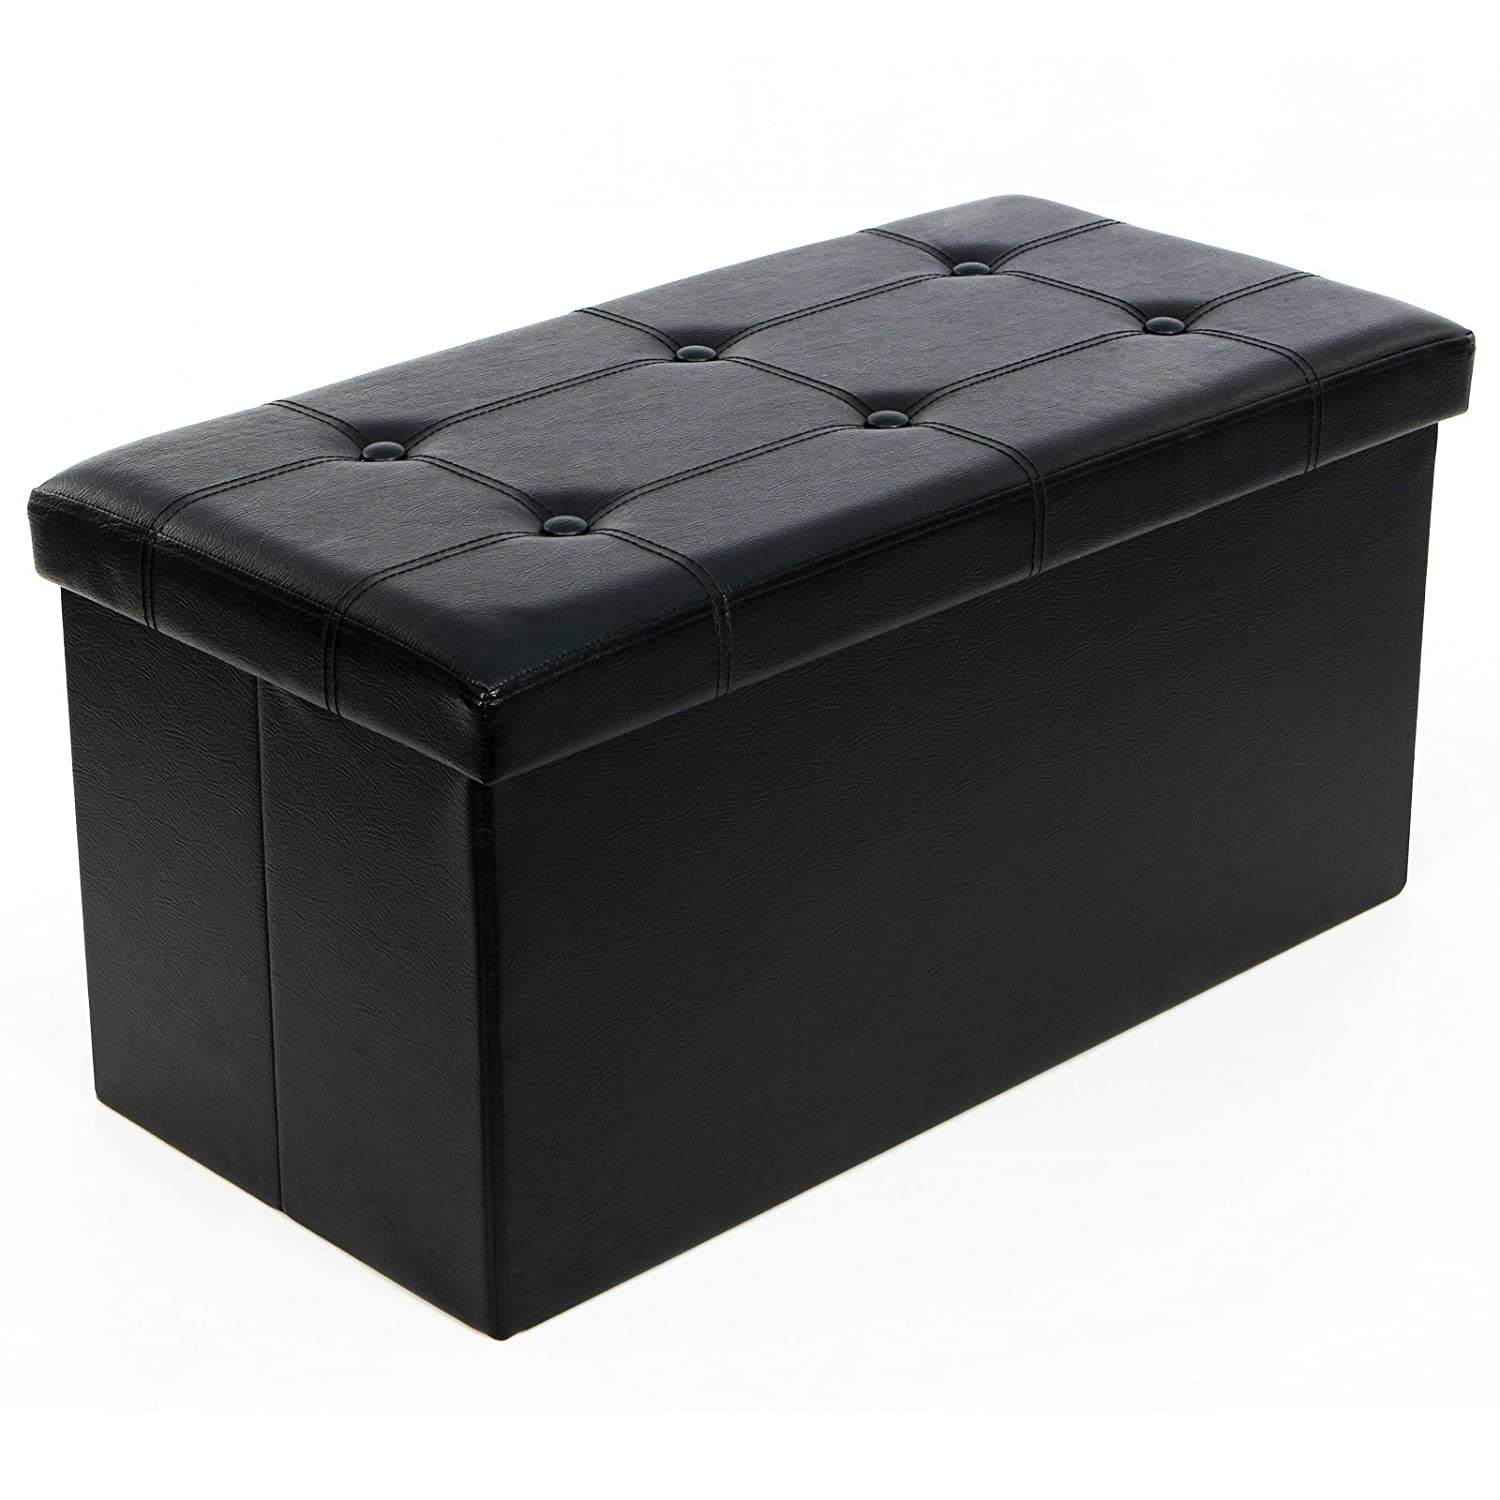 SONGMICS Folding Storage Ottoman Coffee Table Foot Rest Stool, Faux  Leather, Black ULSF105 - Storage Ottoman Amazon.com